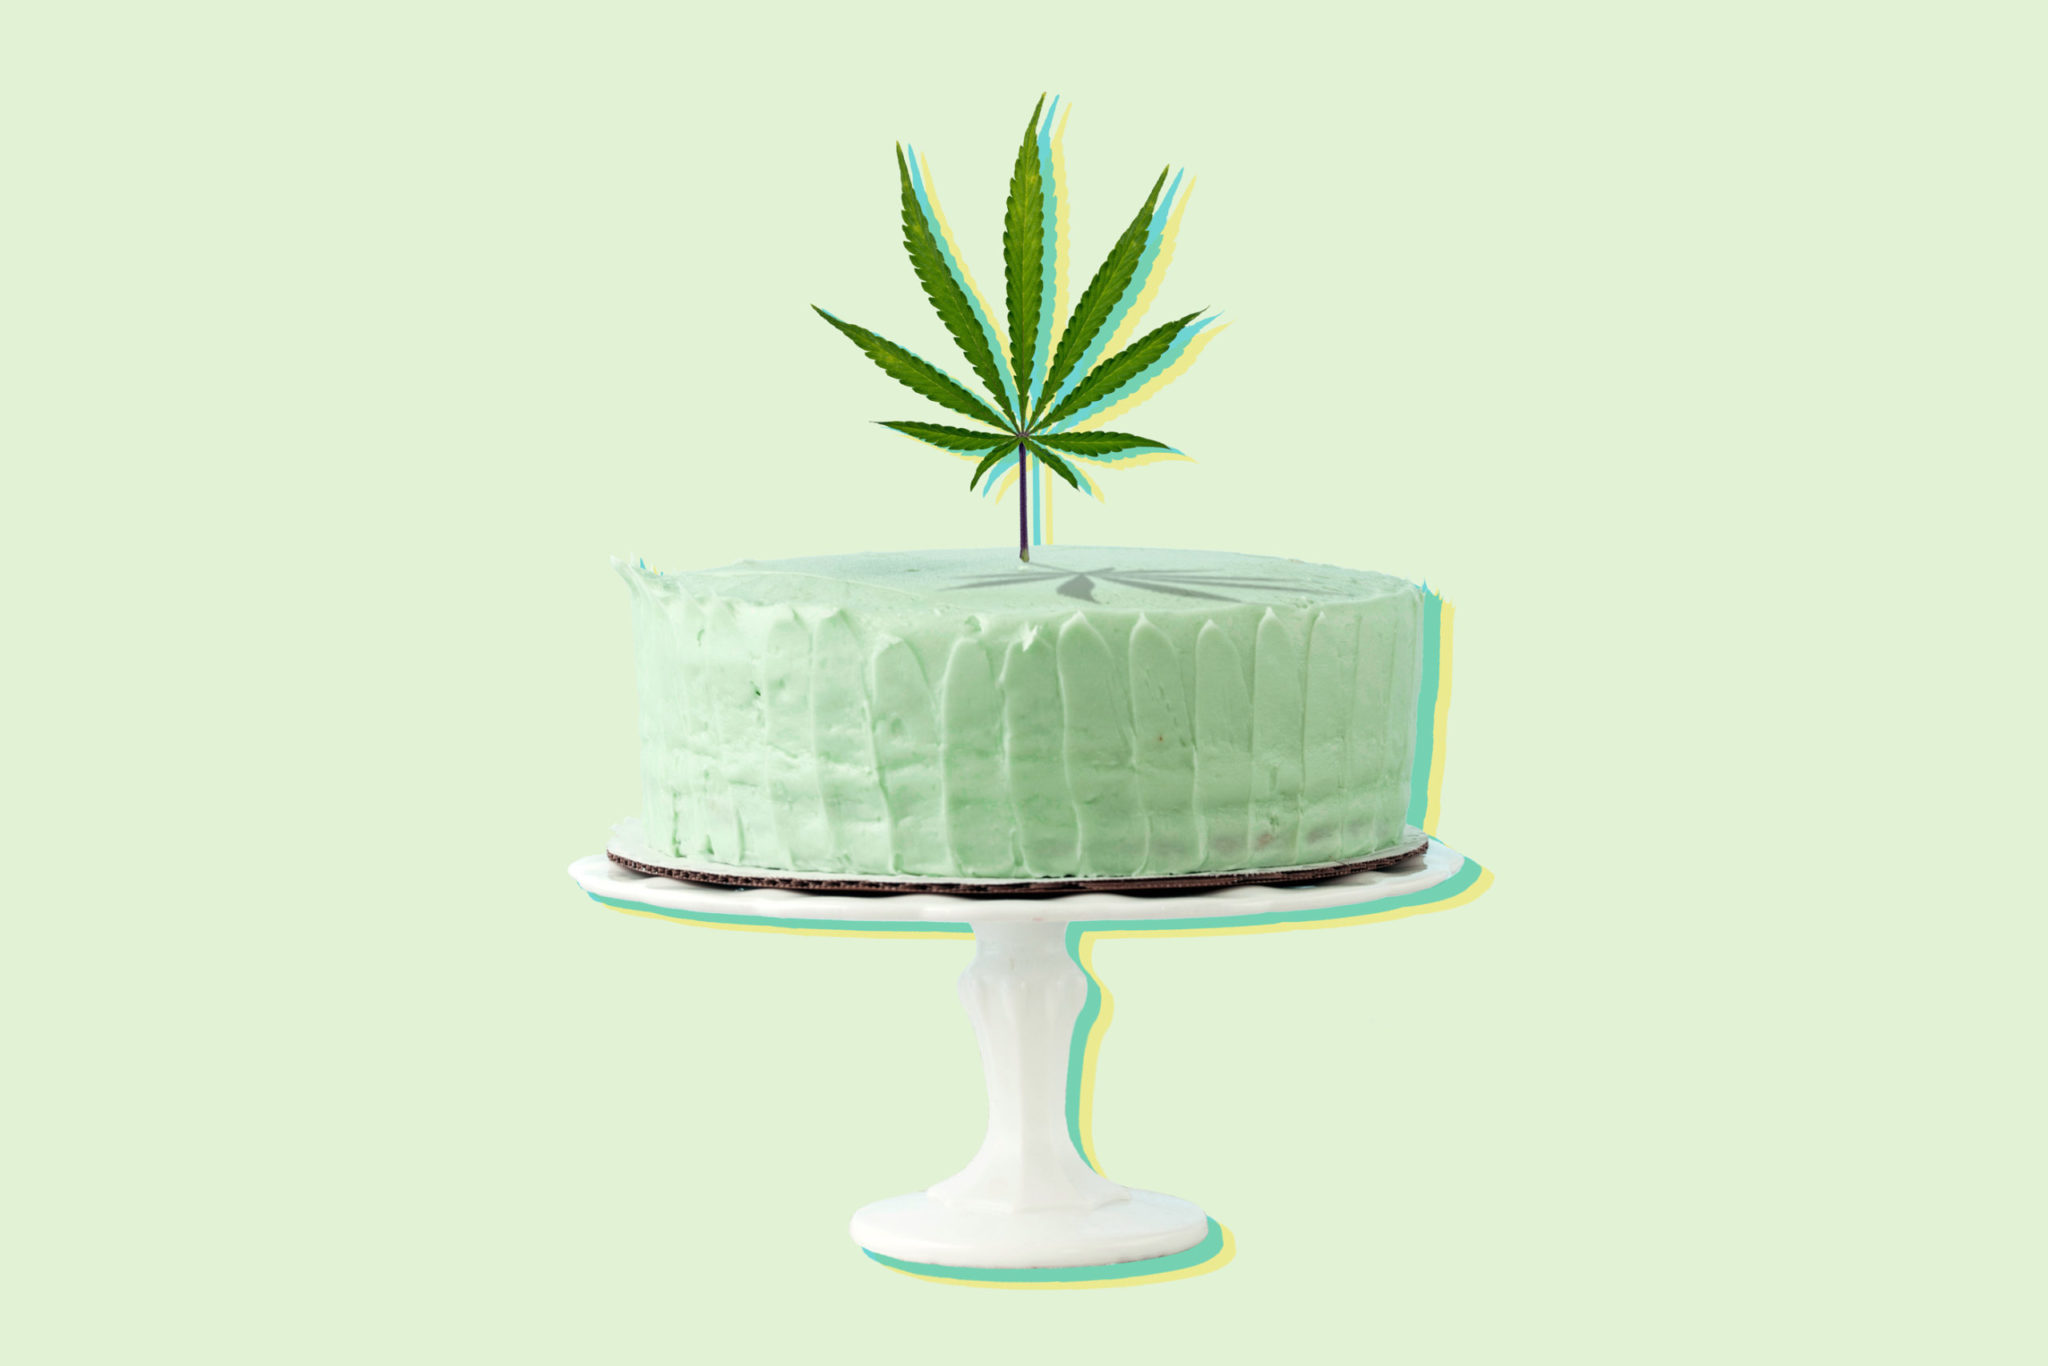 THE ROUND UP: MA ADULT-USE CANNABIS INDUSTRY CELEBRATES ONE-YEAR ANNIVERSARY